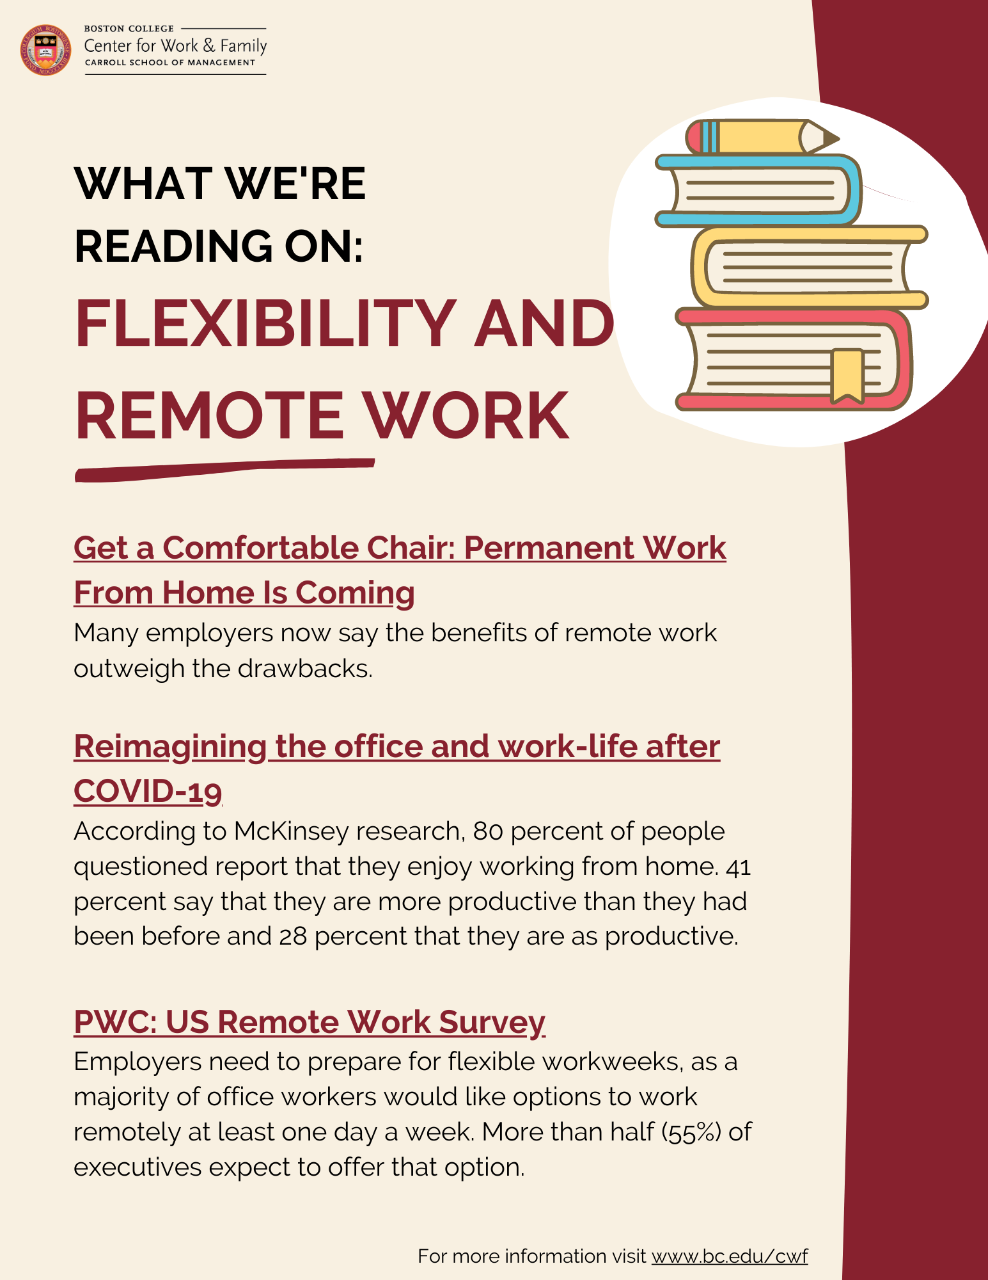 Flexibility and Remote Work